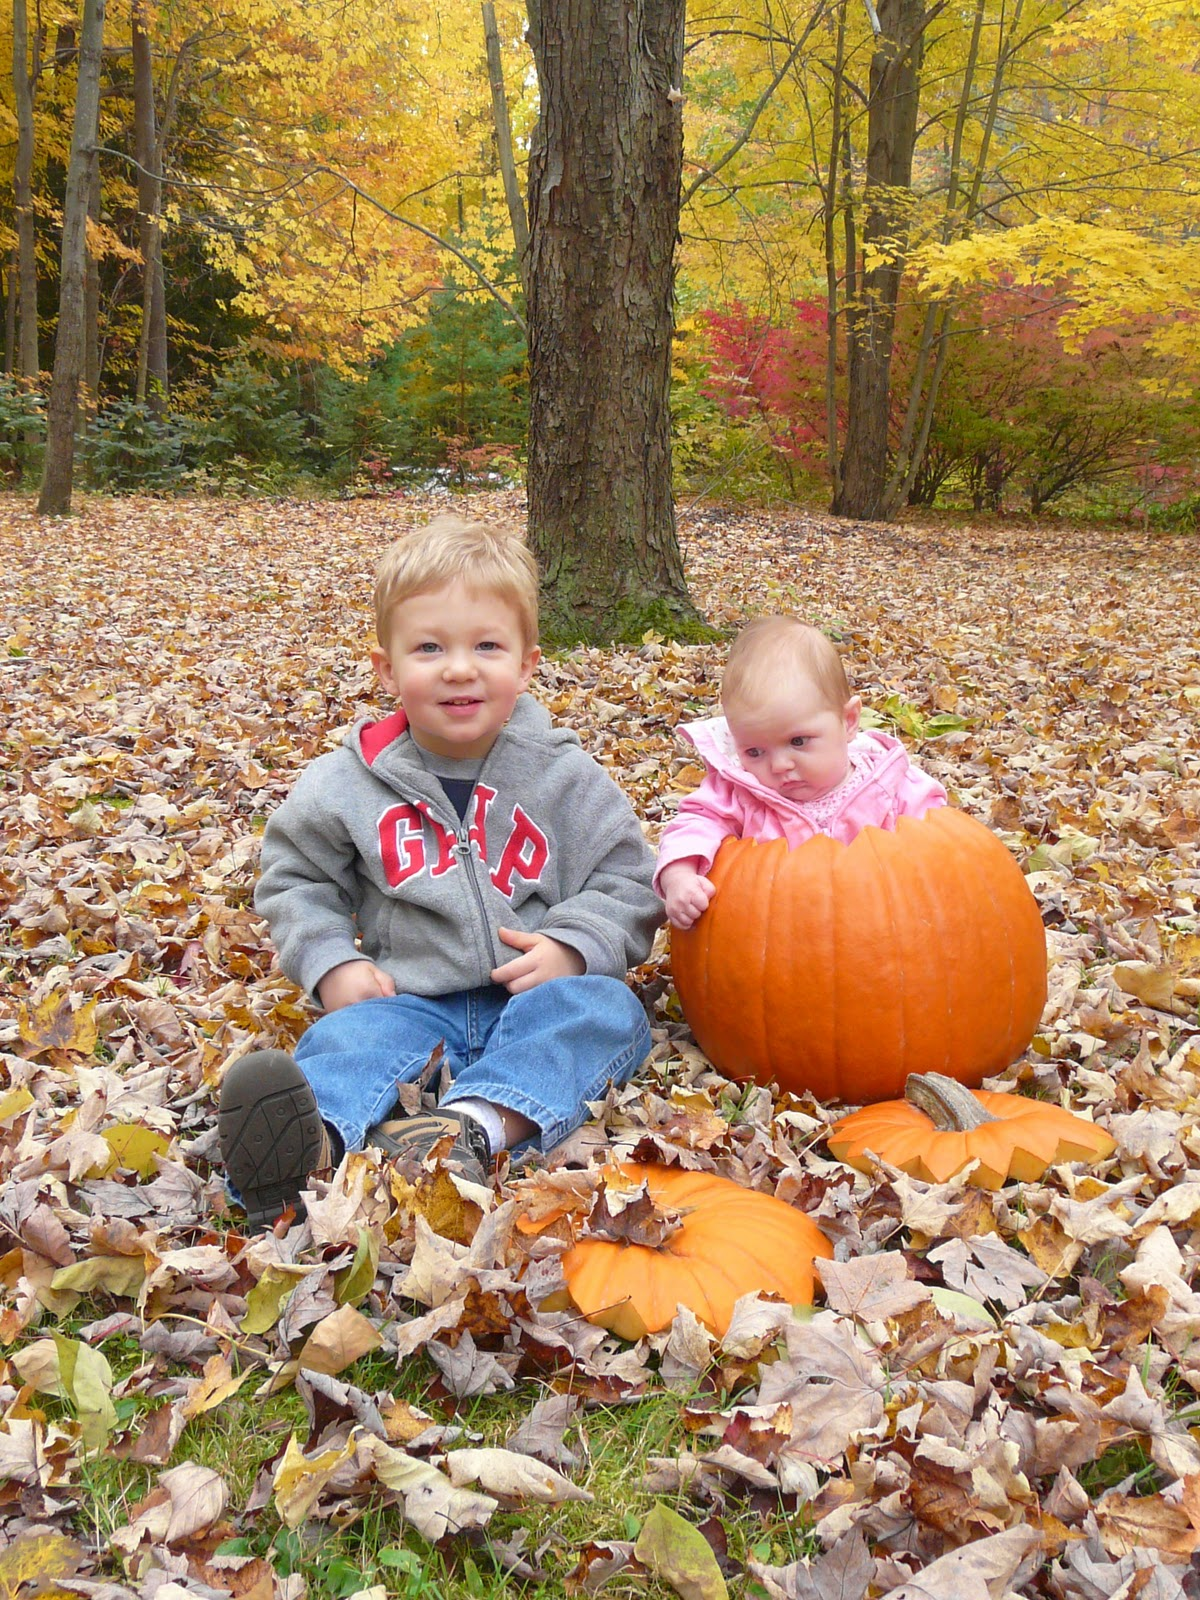 Fall Photo Shoot Ideas For Kids Kids in pumpkins   fall photoFall Photo Shoot Ideas For Babies